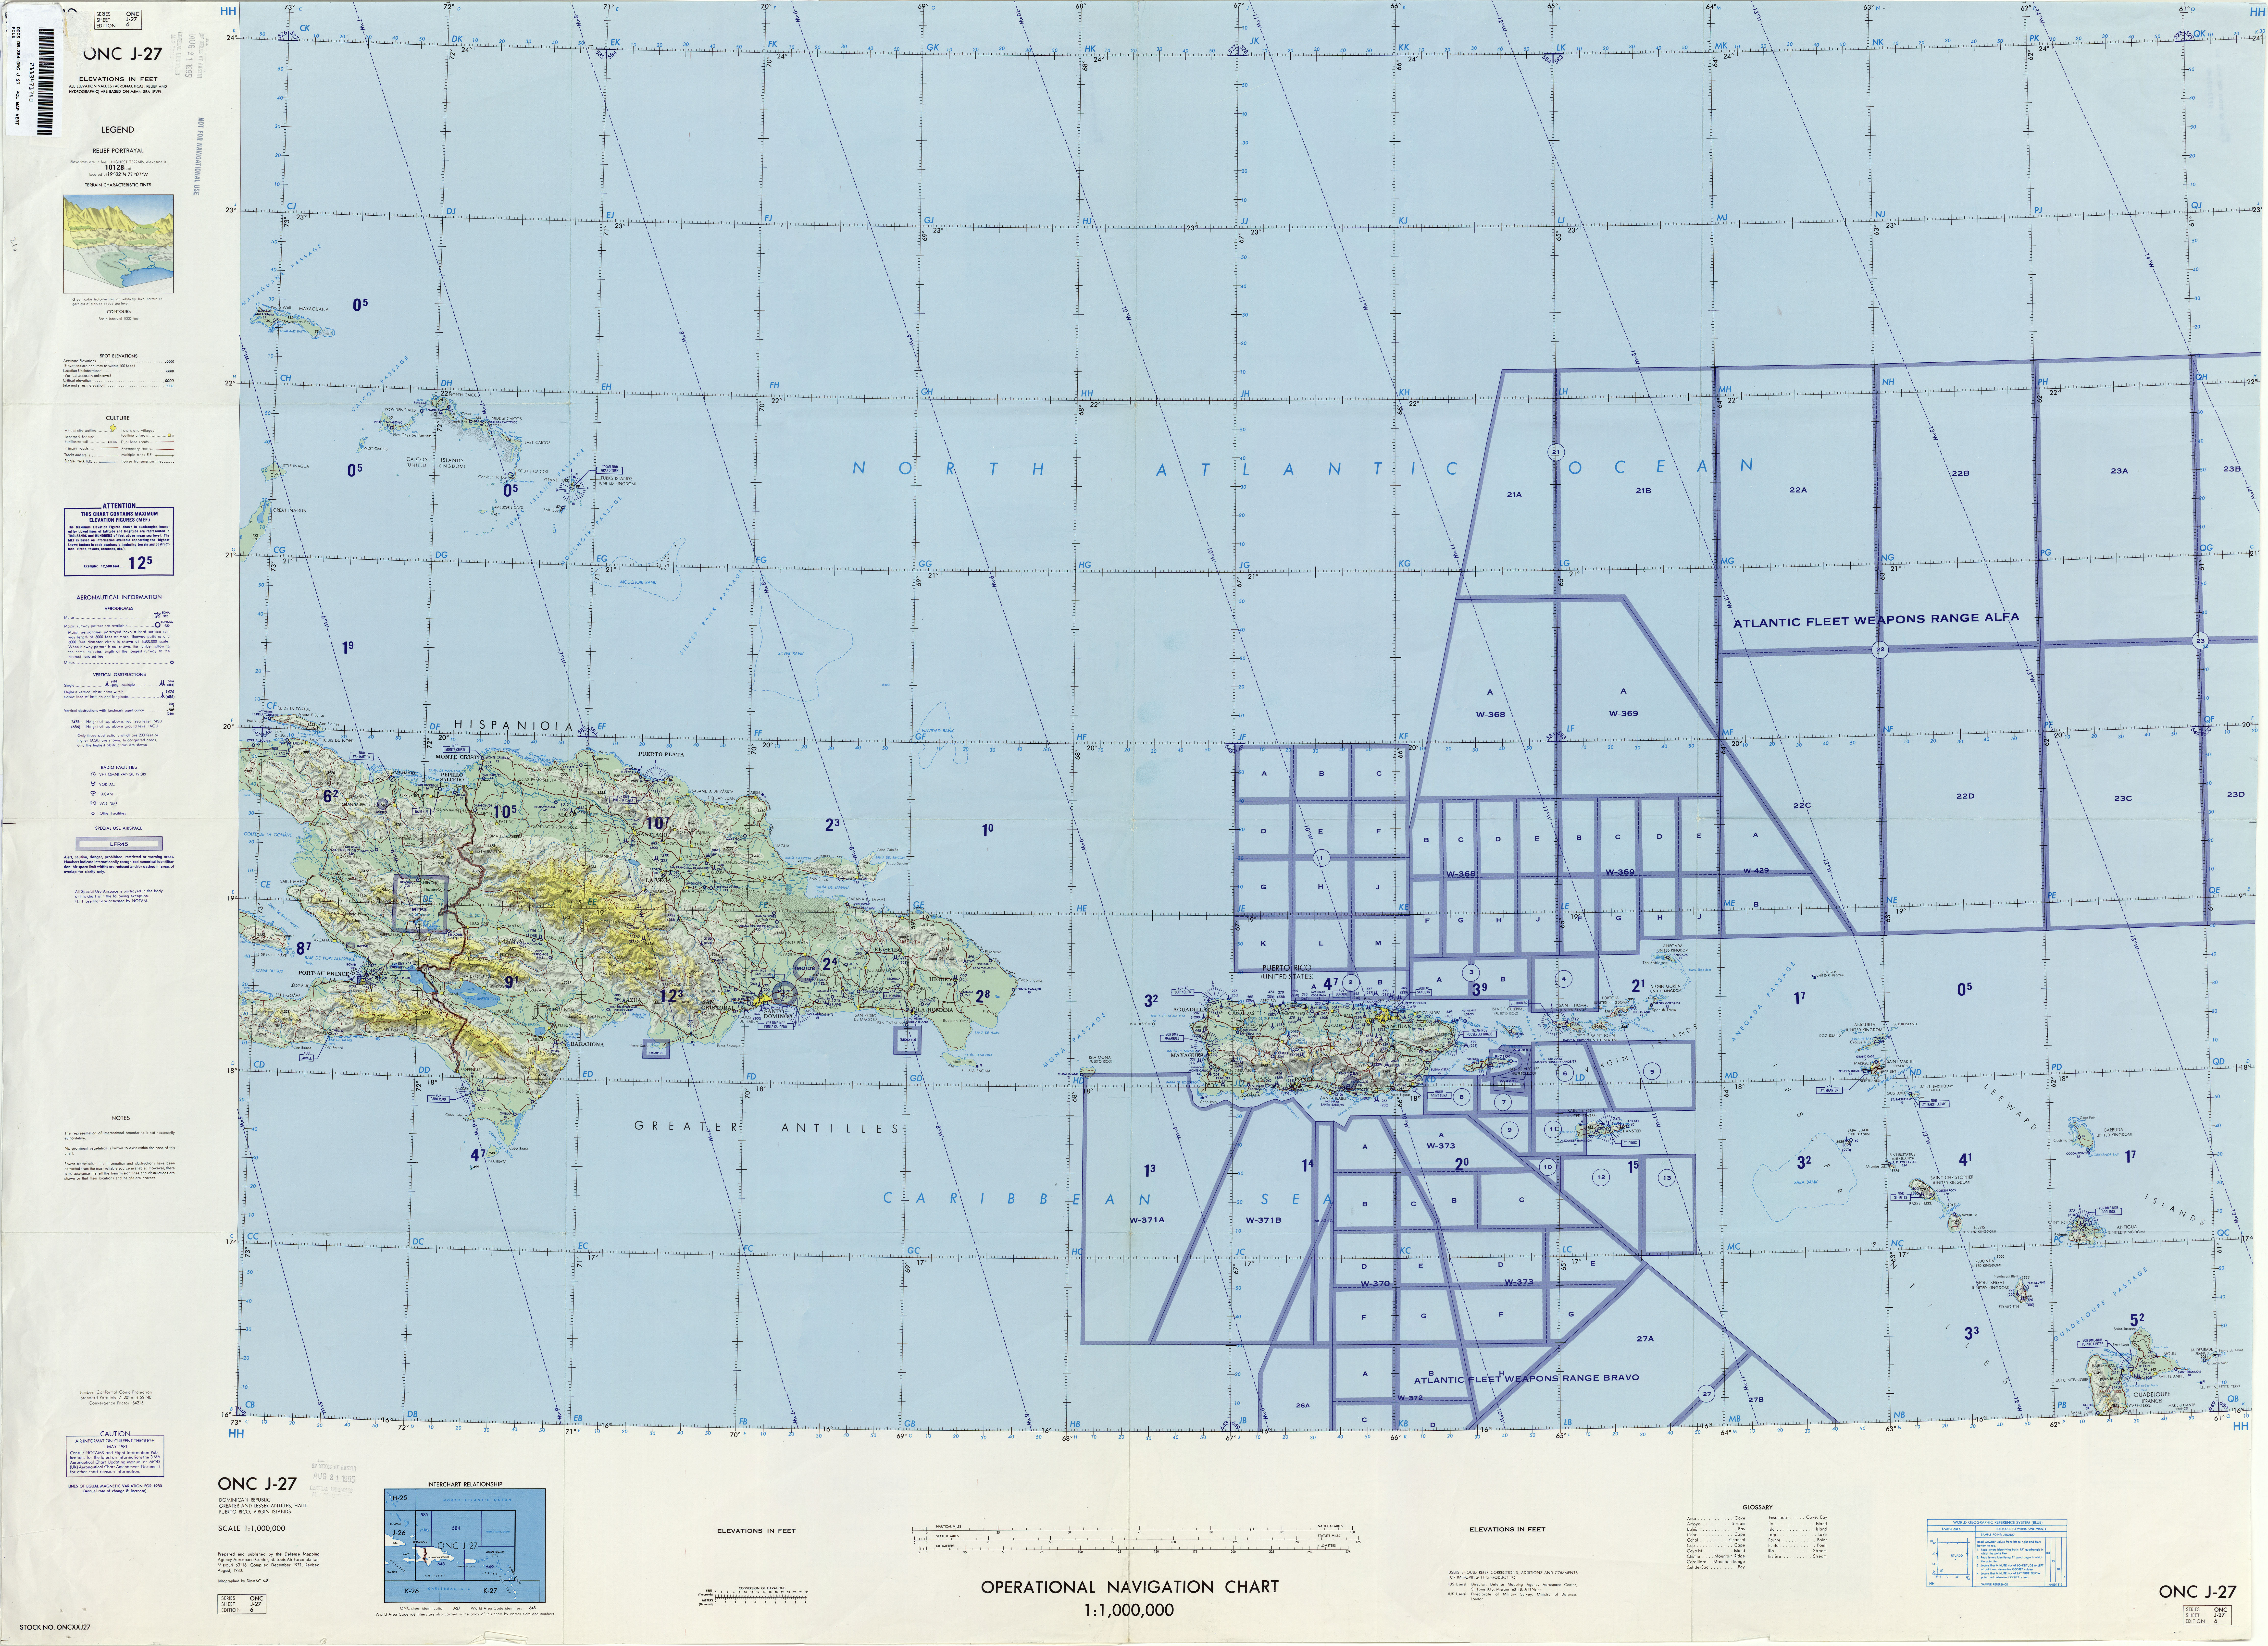 Chart U S Defense Mapping Agency Aeroe Center Revised 1980 Not For Navigational Use 9 5mb This Sheet Includes Puerto Rico